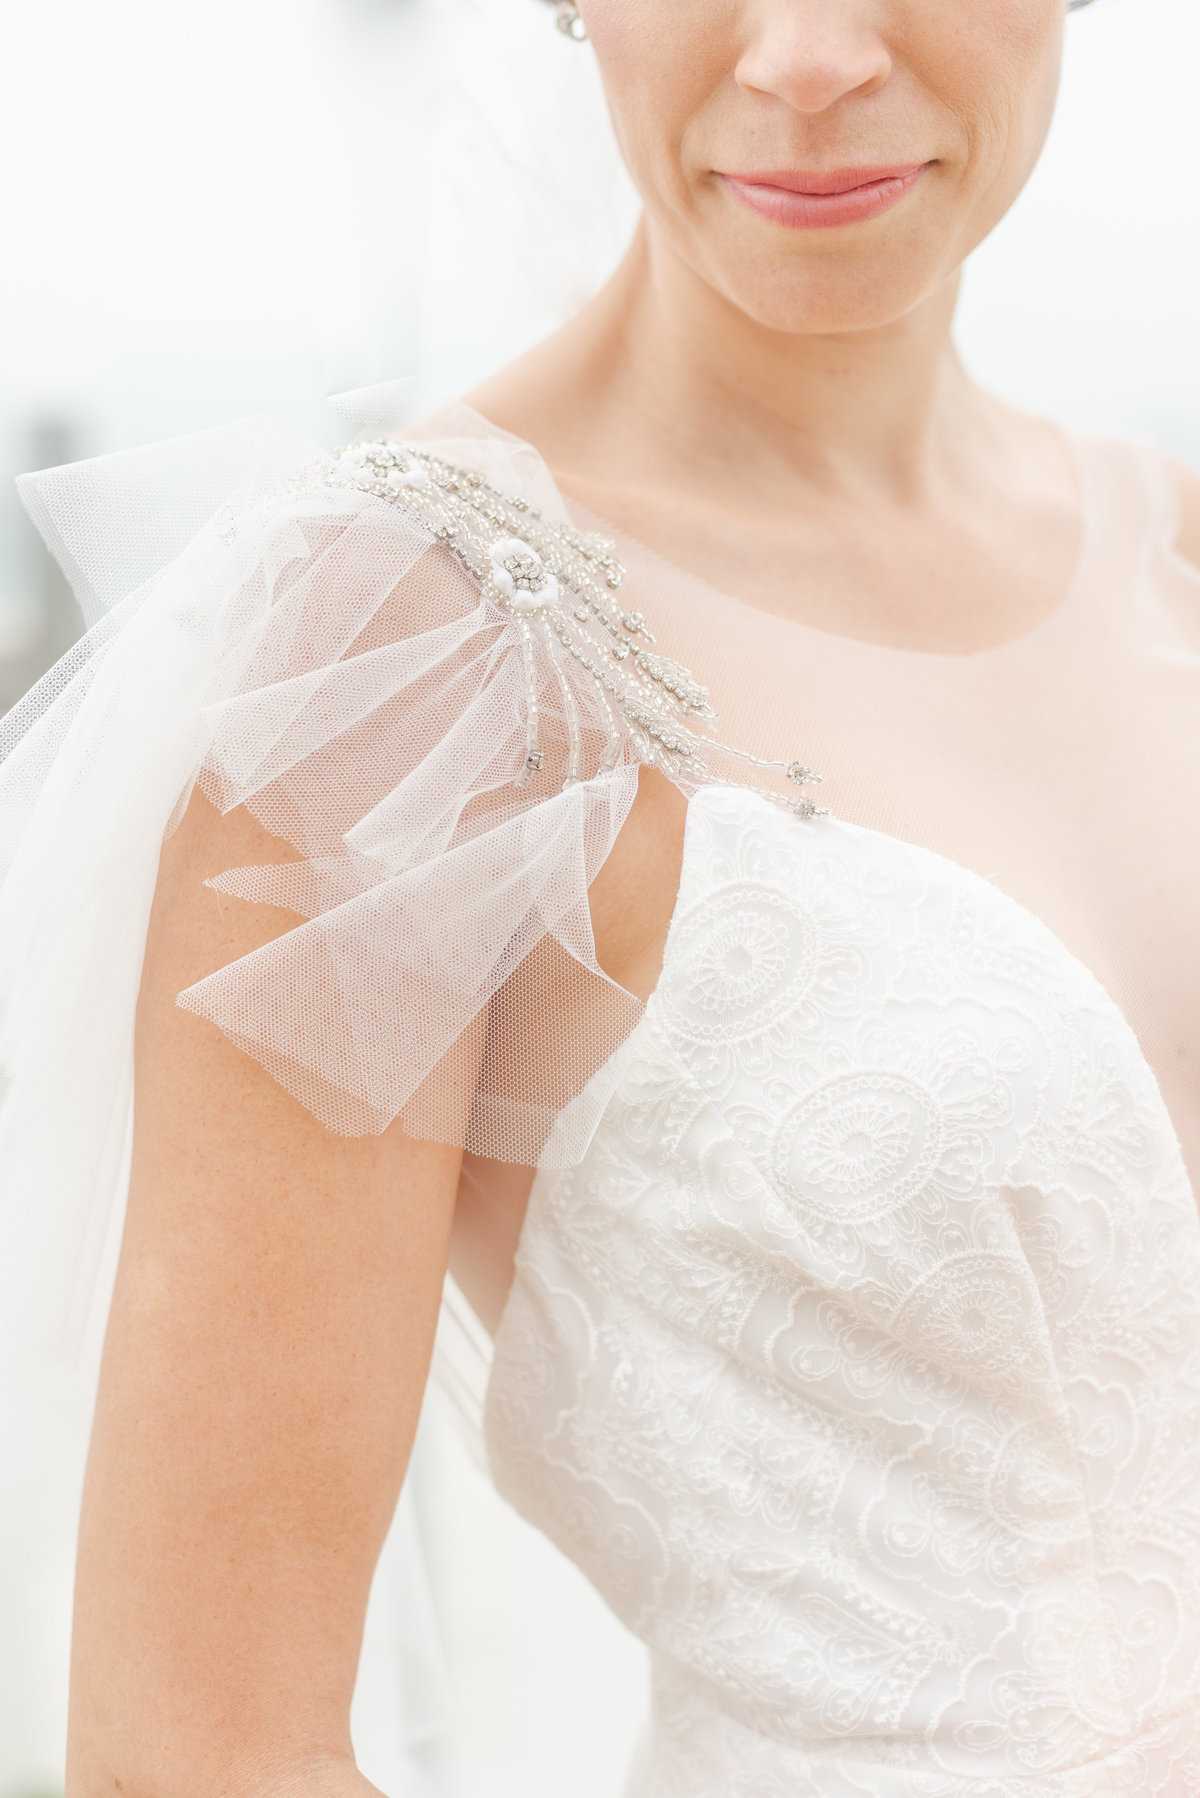 Tulle sleeves and delicate beading make up the shoulder of a wedding dress during wedding at Offshore Chicago